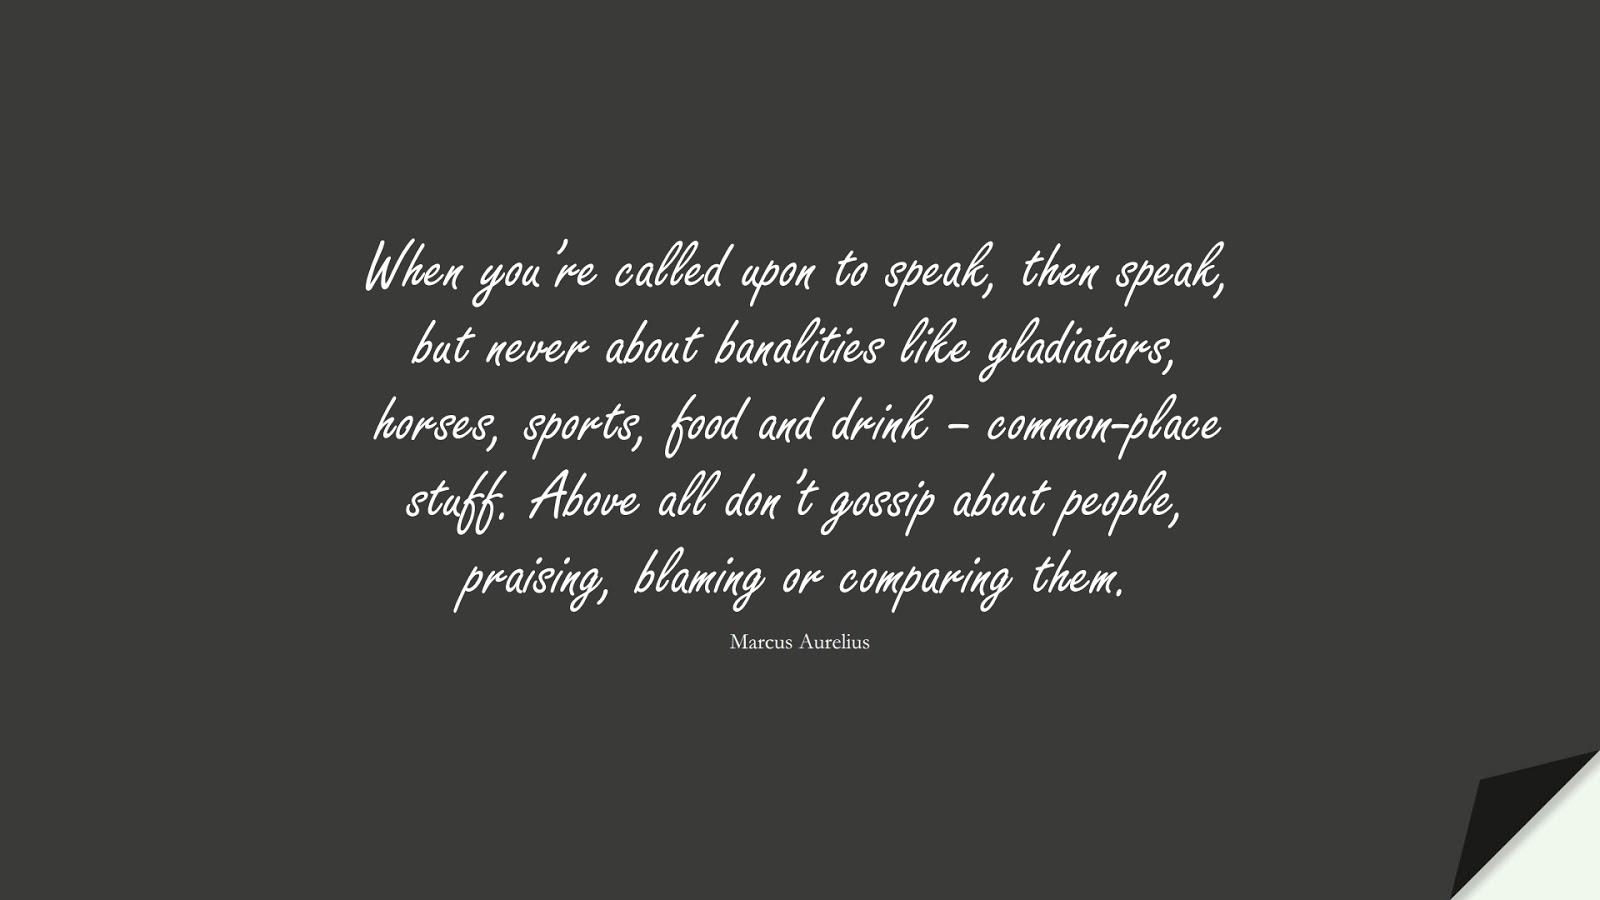 When you're called upon to speak, then speak, but never about banalities like gladiators, horses, sports, food and drink – common-place stuff. Above all don't gossip about people, praising, blaming or comparing them. (Marcus Aurelius);  #MarcusAureliusQuotes